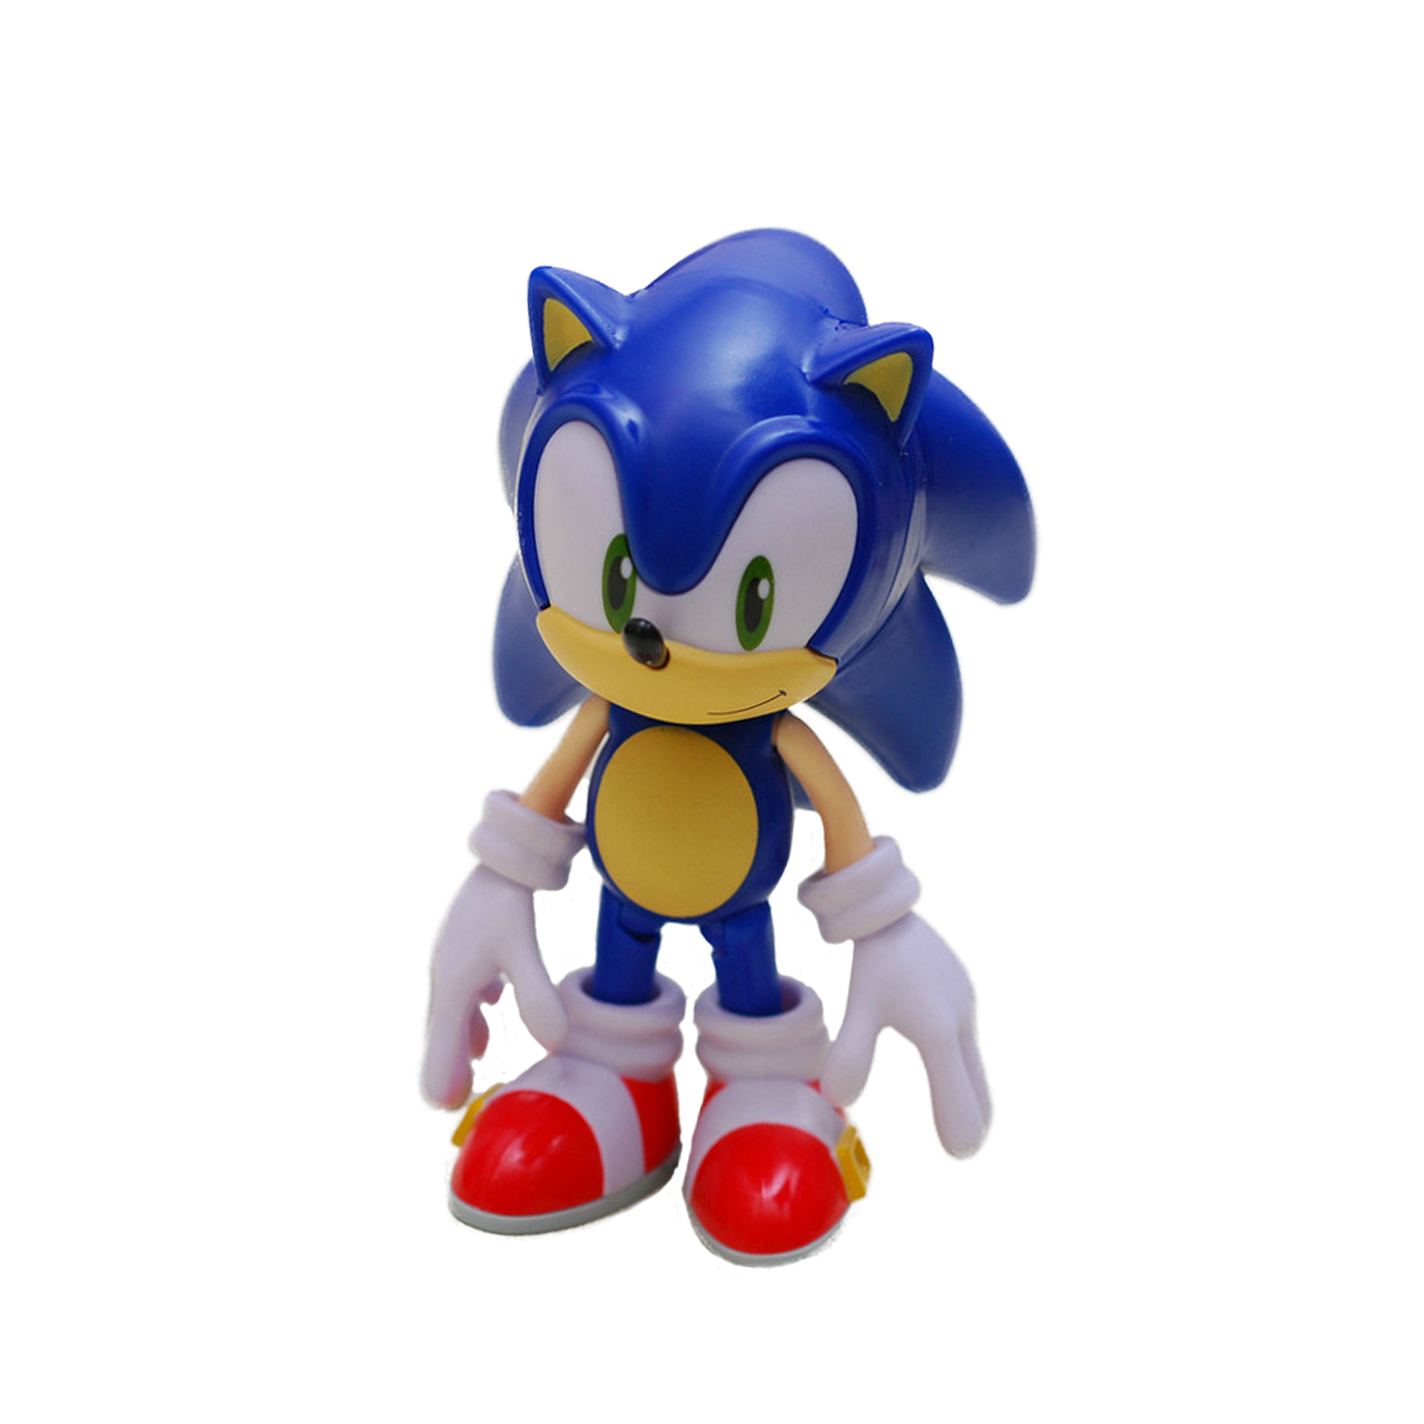 Buy Chanycore GSC Nendoroid 566# Sonic Supersonic speed Hedgehog Action Figure Collection Model Toy 10cm 4'' for $15.92 in AliExpress store